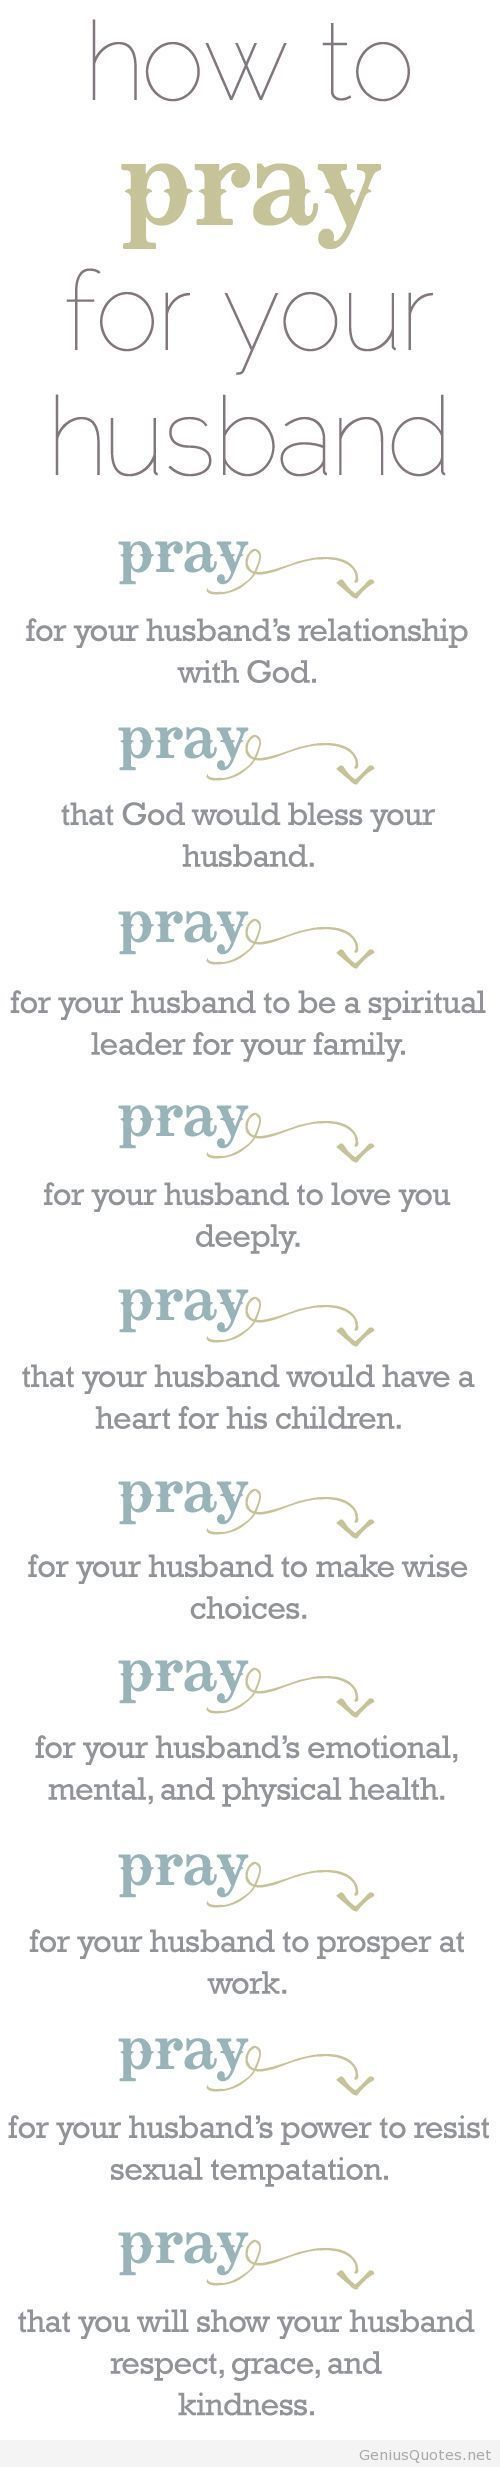 best happy birthday husband ideas pinterest sayings tag archives husbands